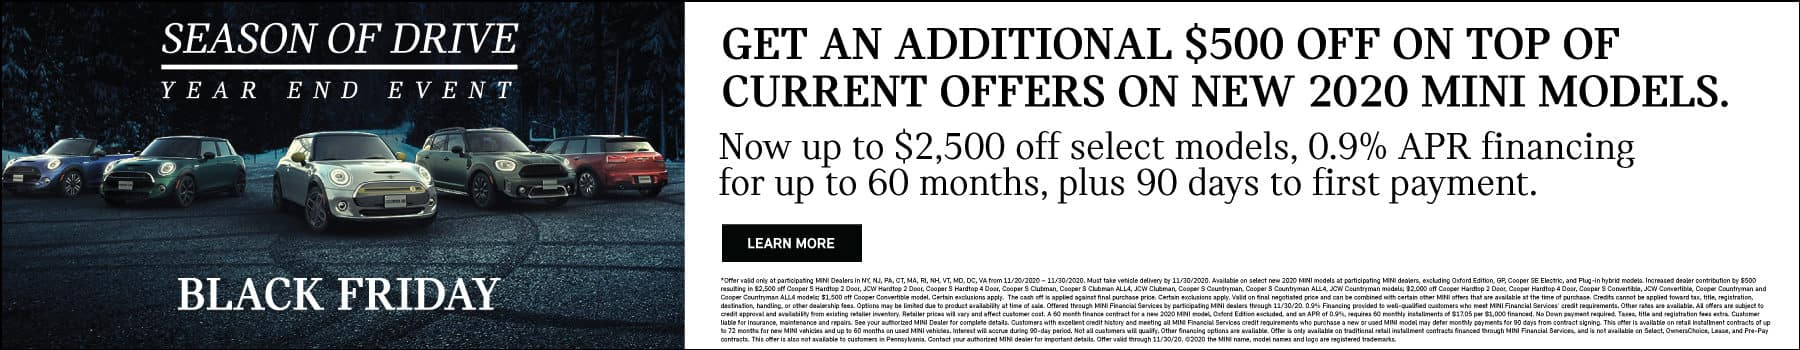 GET AN ADDITIONAL $500 OFF CURRENT OFFERS ON NEW MODELS. Now up to $2500 off select MINI models for up to 60 months, plus 90 days to first payment.